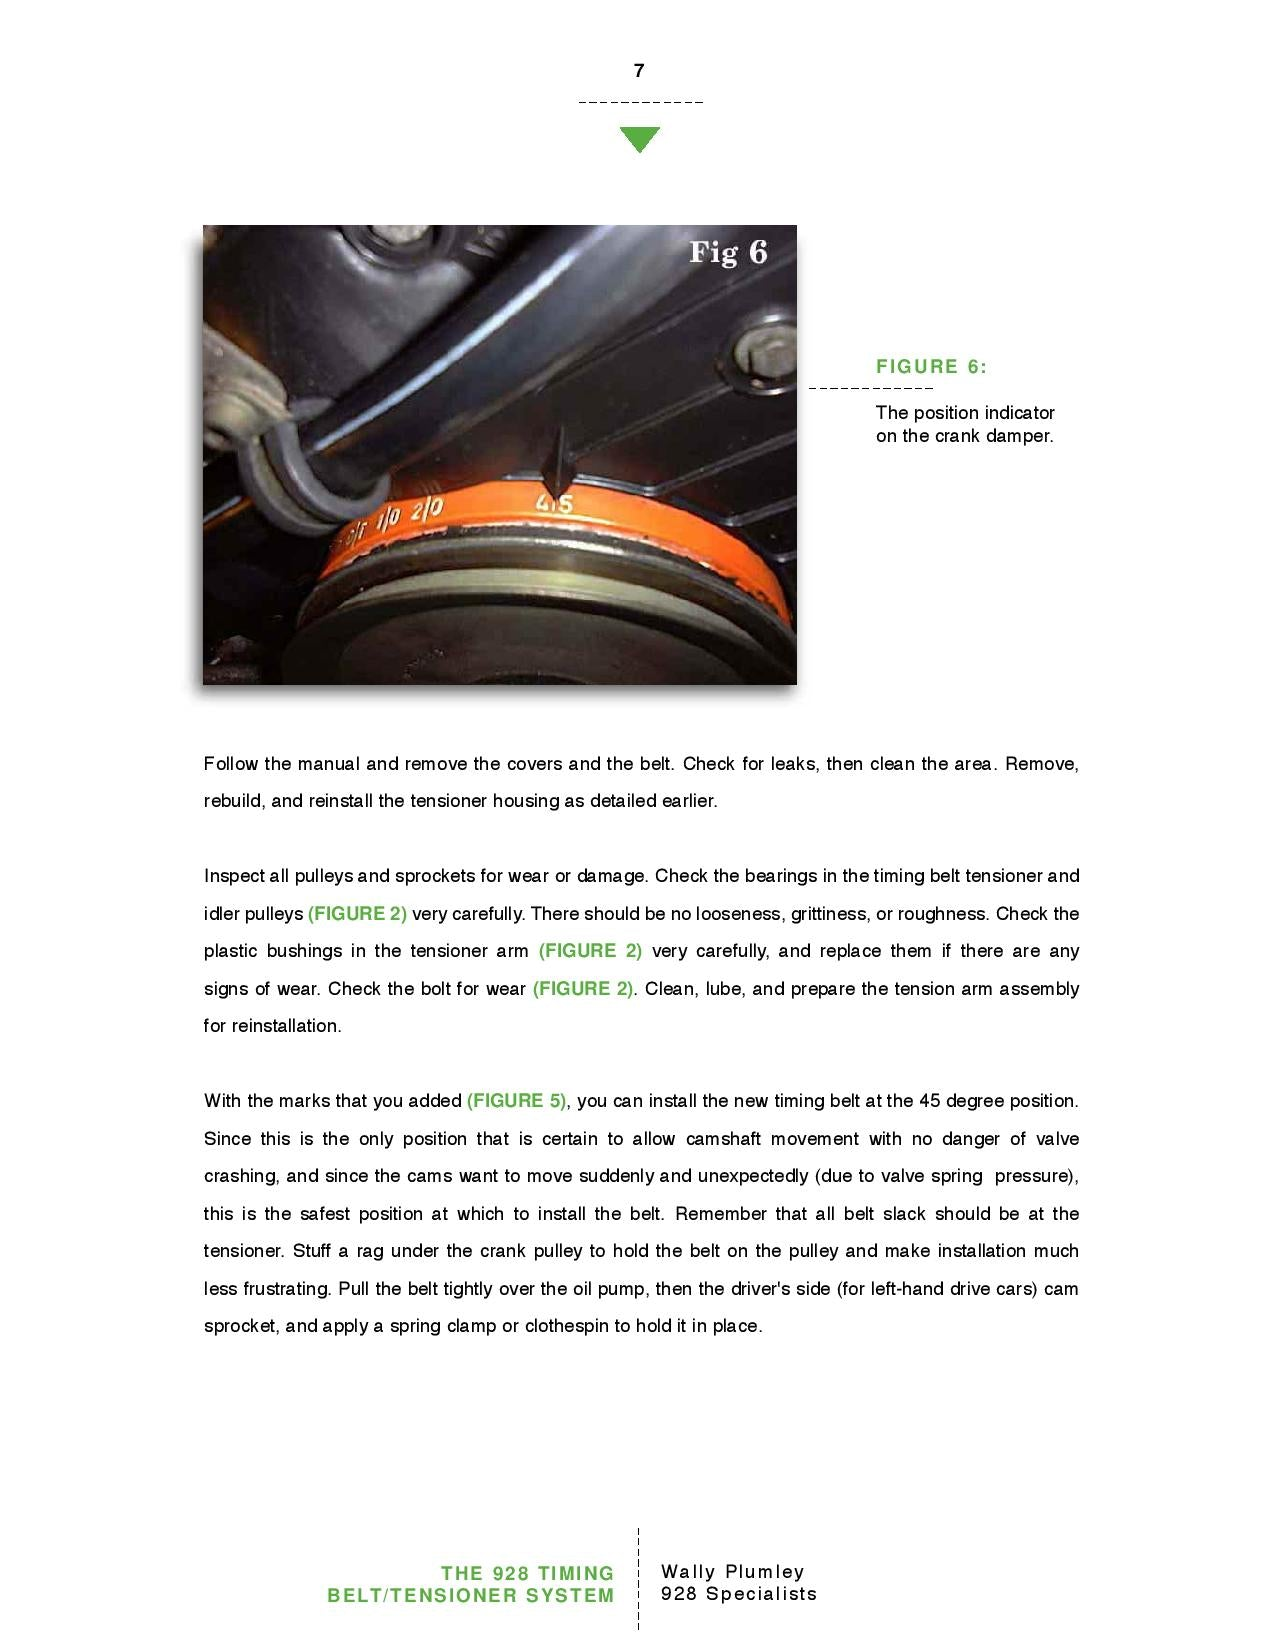 The 928 Timing Belt and Tensioner System pg7